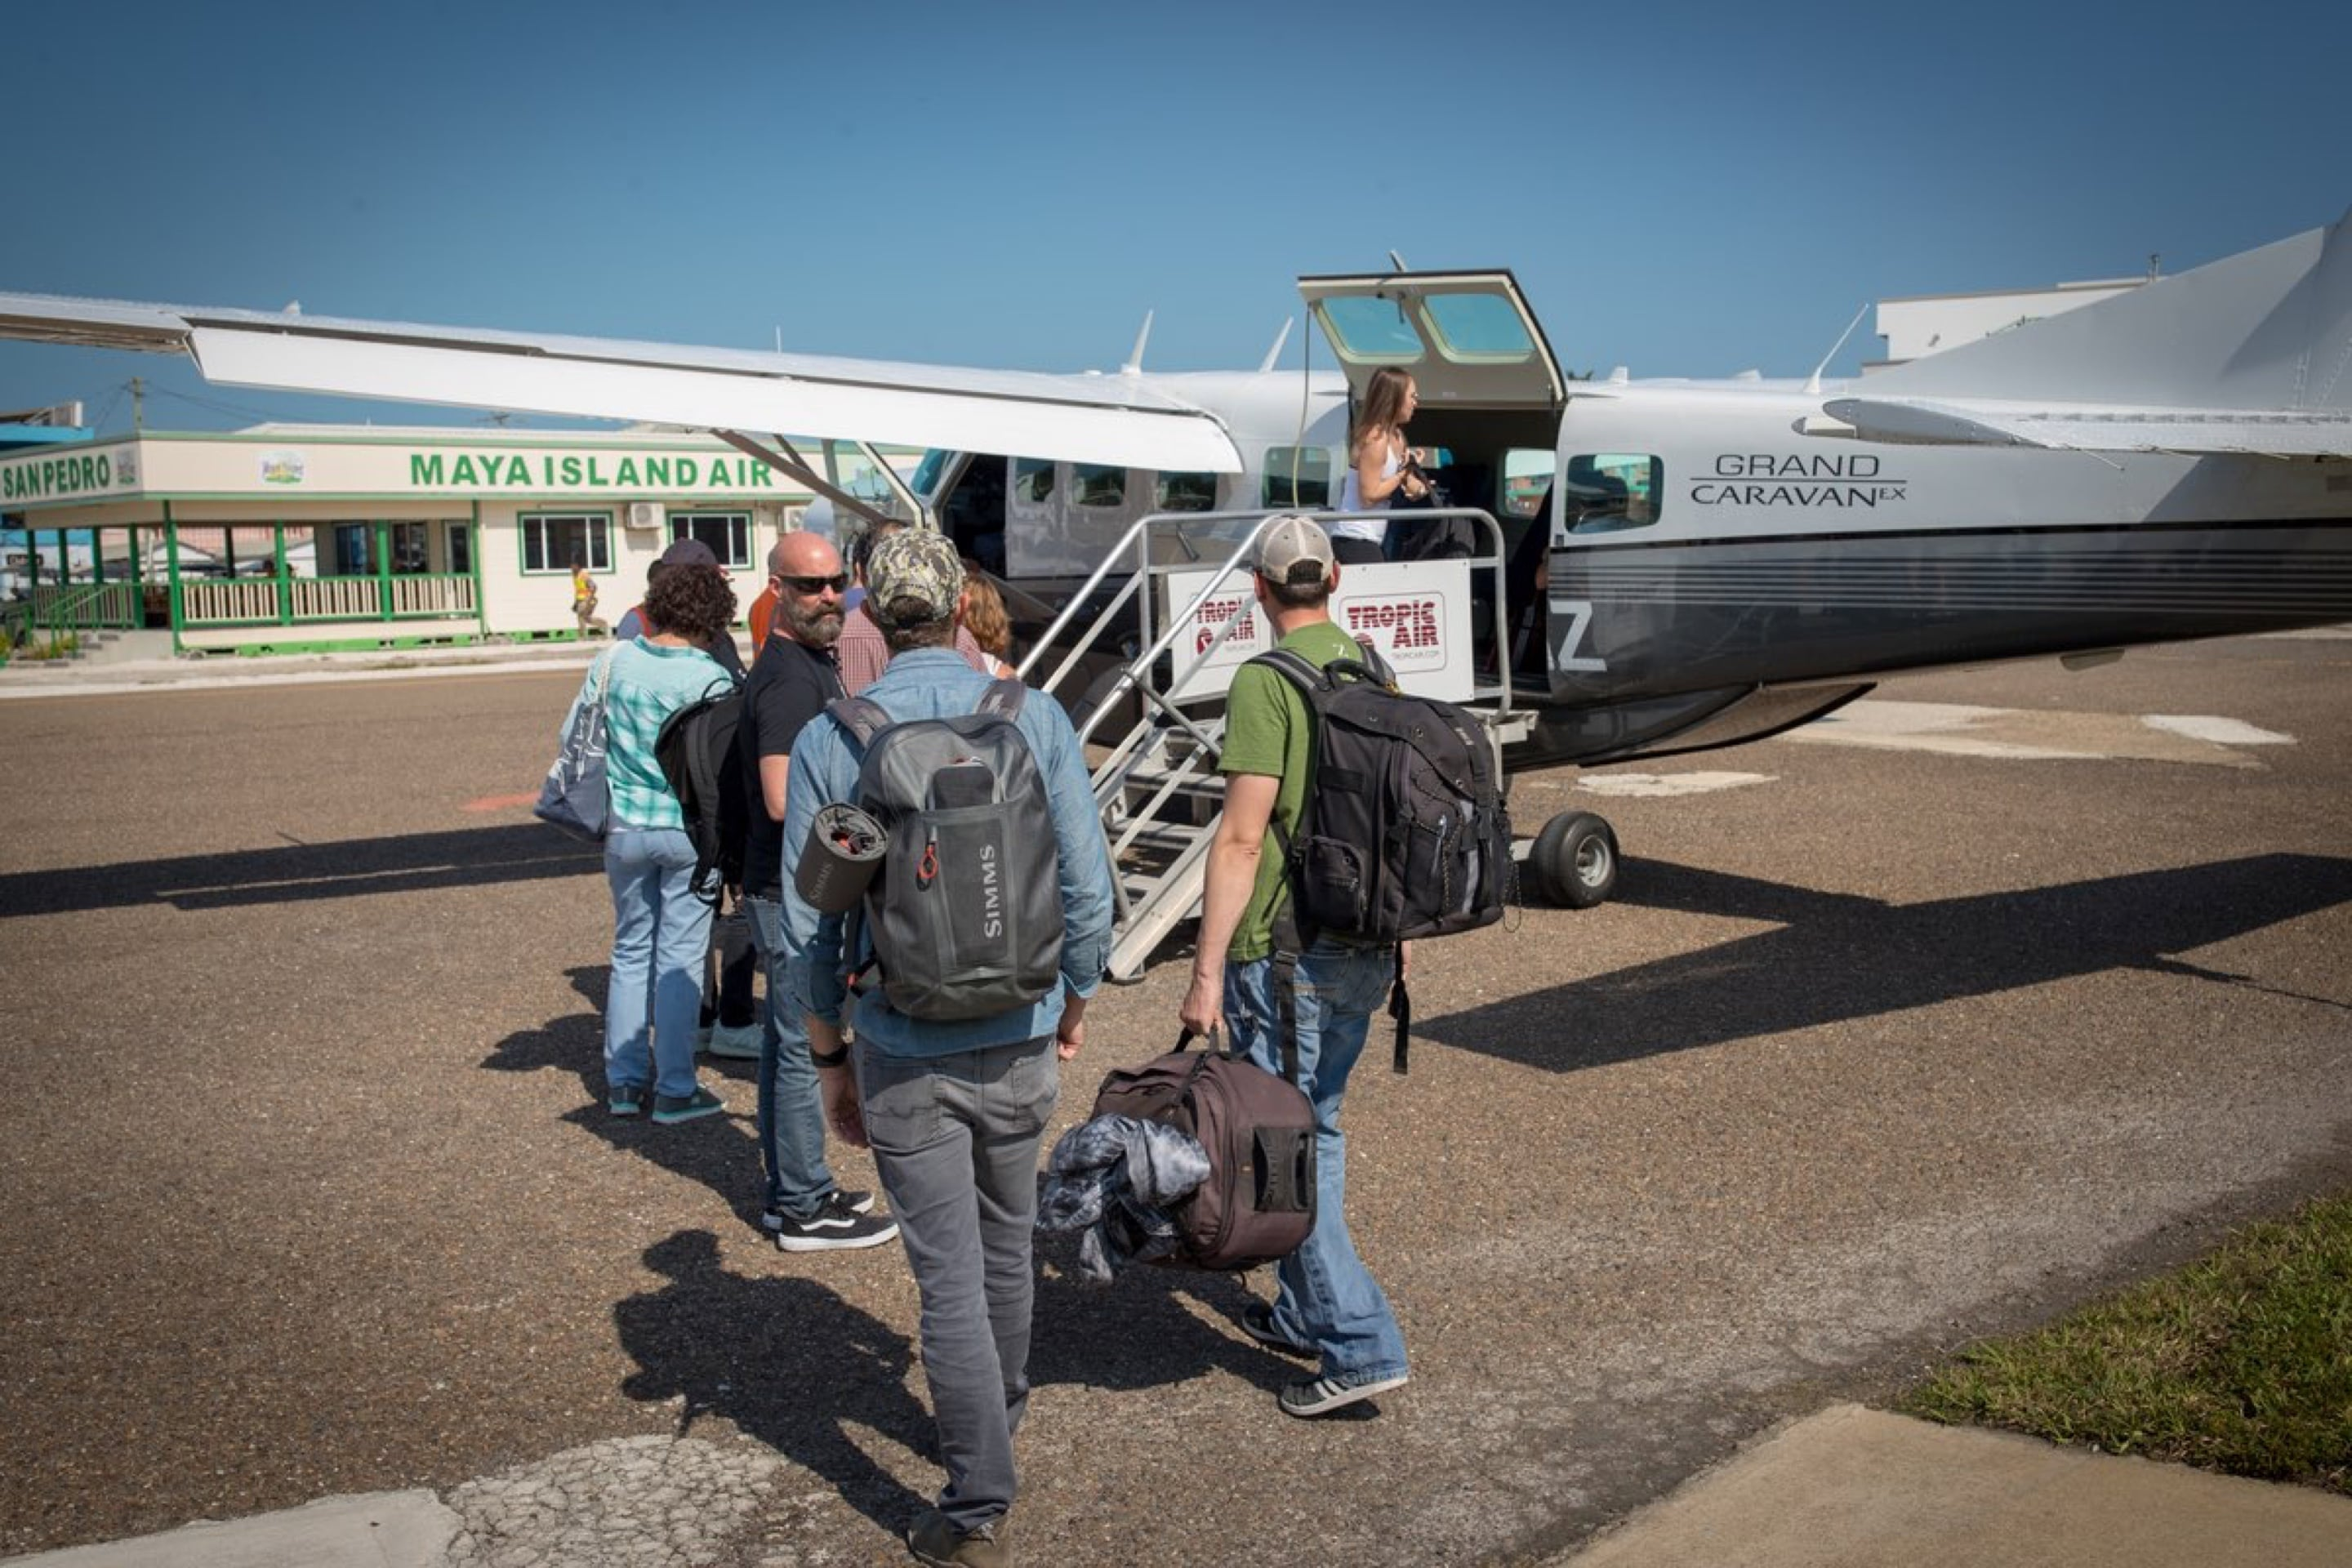 BOTE crew loading up on the plane